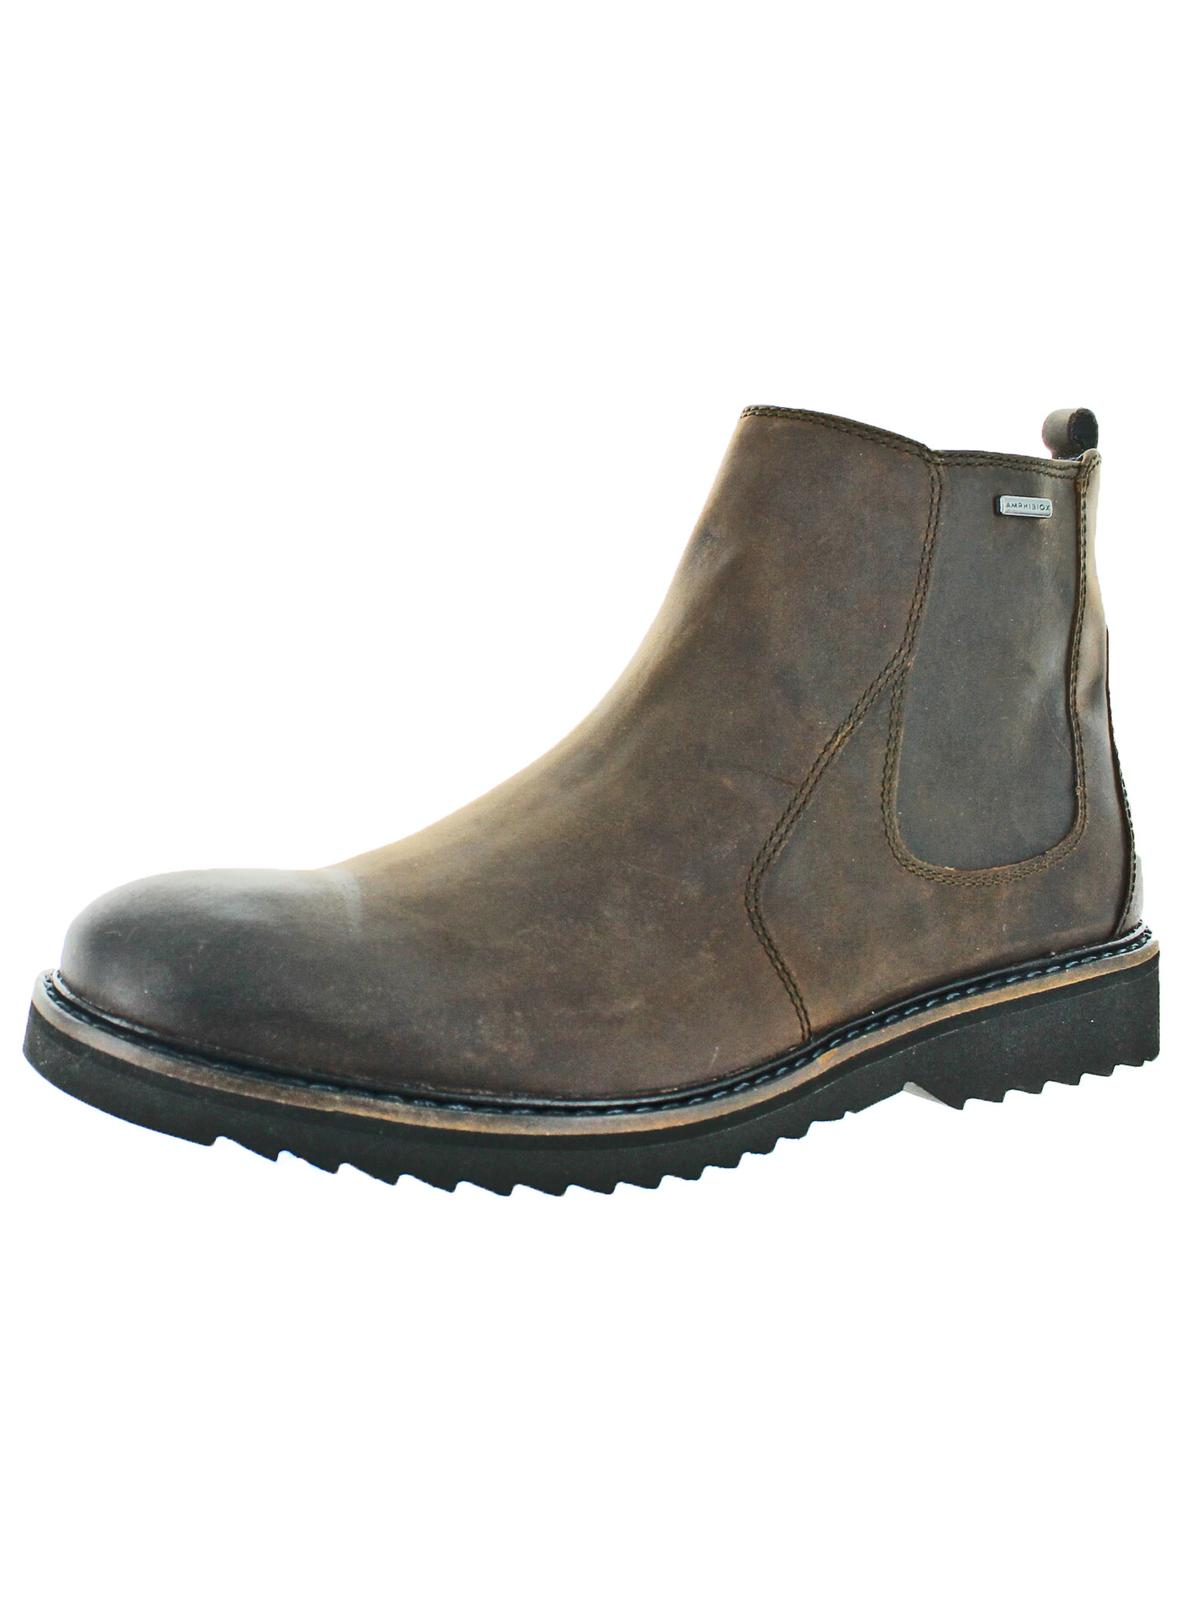 Geox Mens Chester Amphibiox Leather Waterproof Chelsea Boots